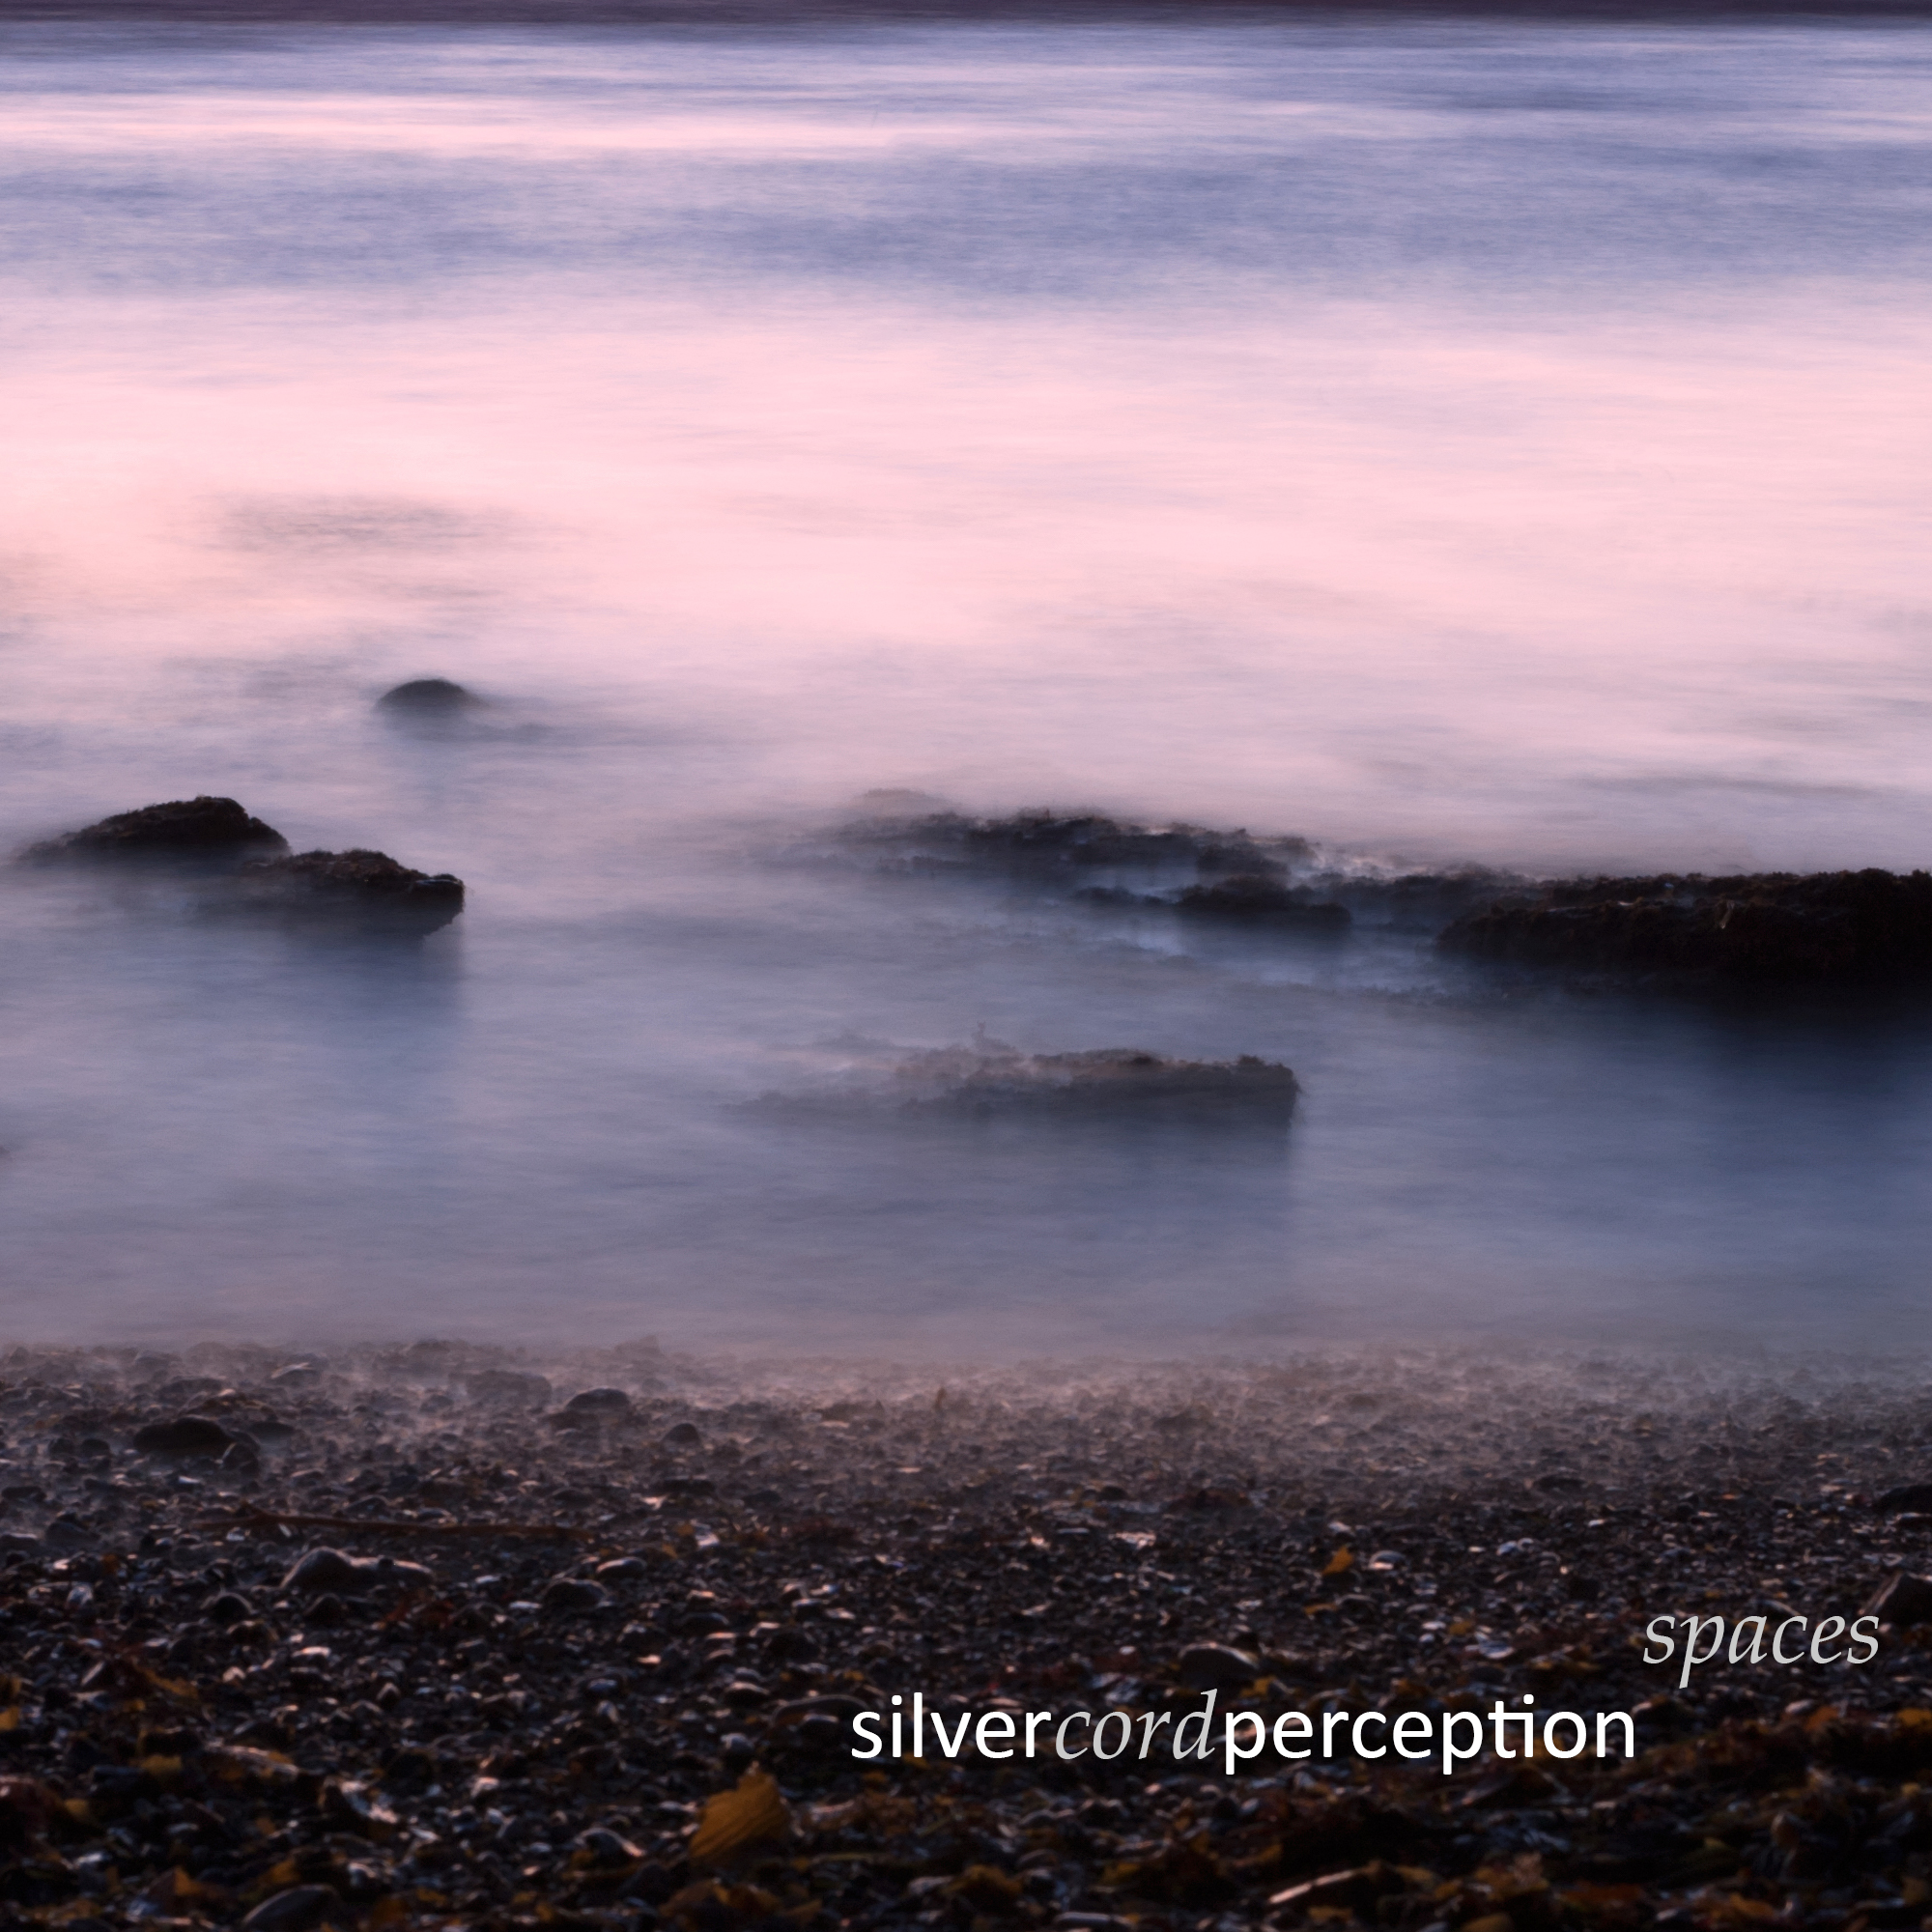 http://silvercordperception.com/album/spaces